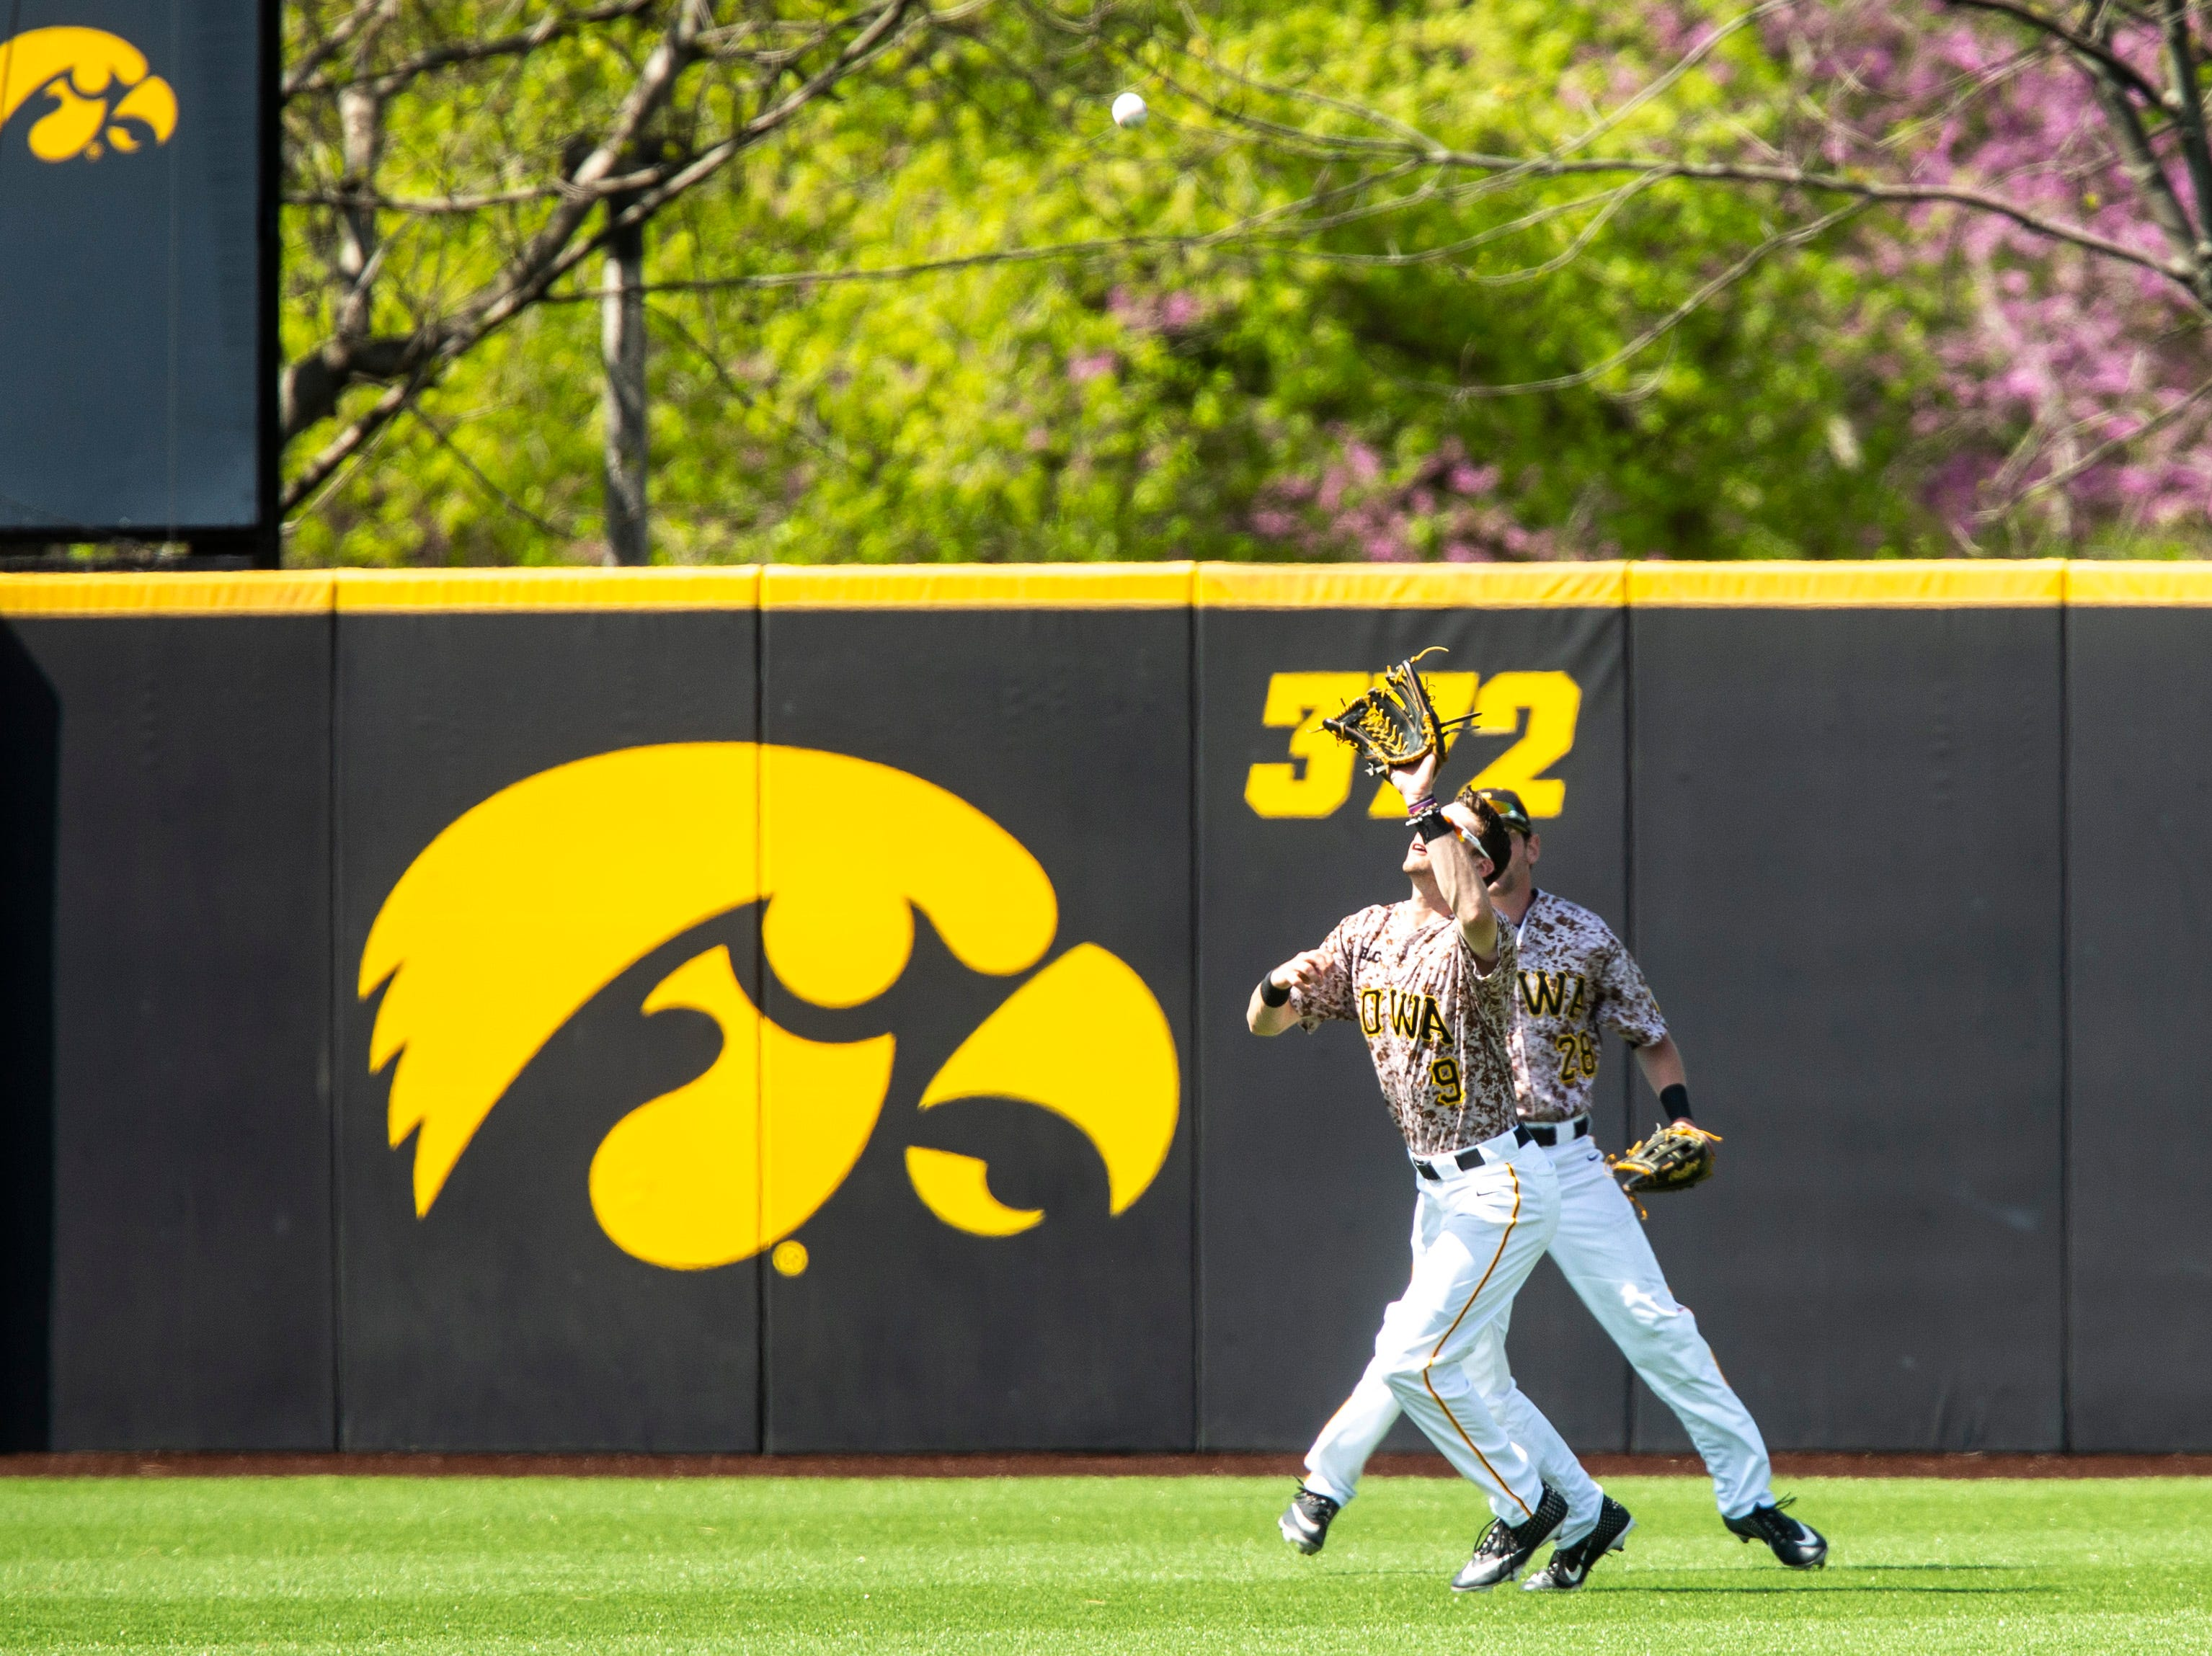 Iowa outfielder Ben Norman (9) gets an out in center field during a NCAA non conference baseball game, Sunday, May 5, 2019, at Duane Banks Field in Iowa City, Iowa.